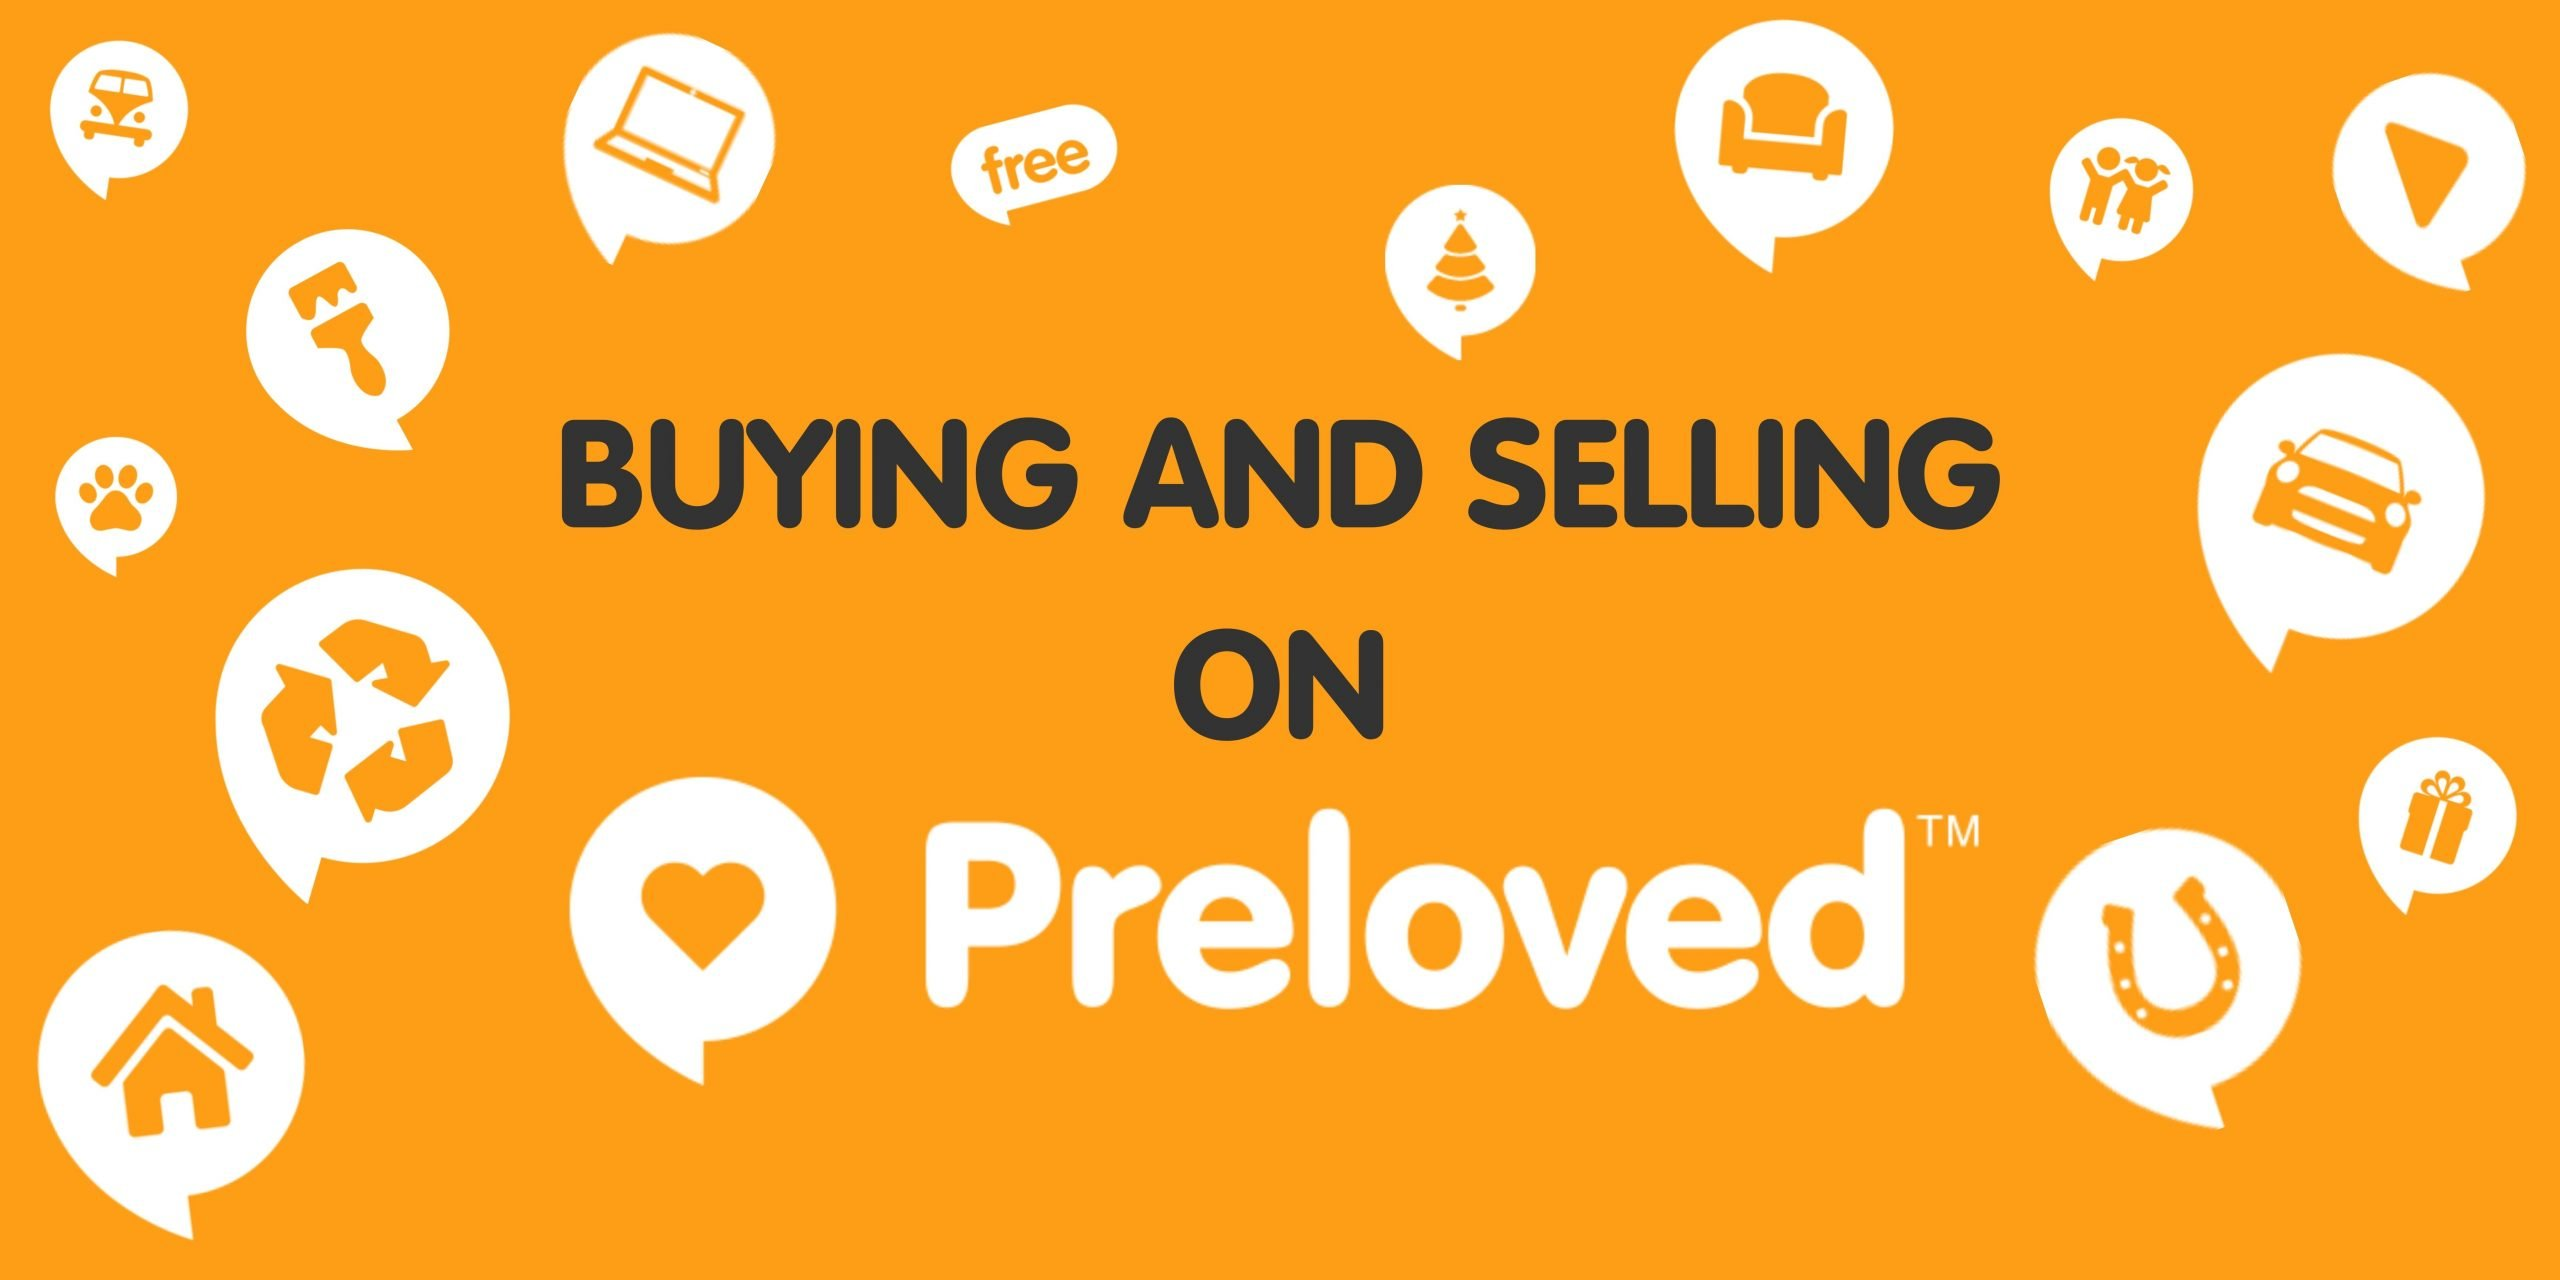 Buying and selling preloved items